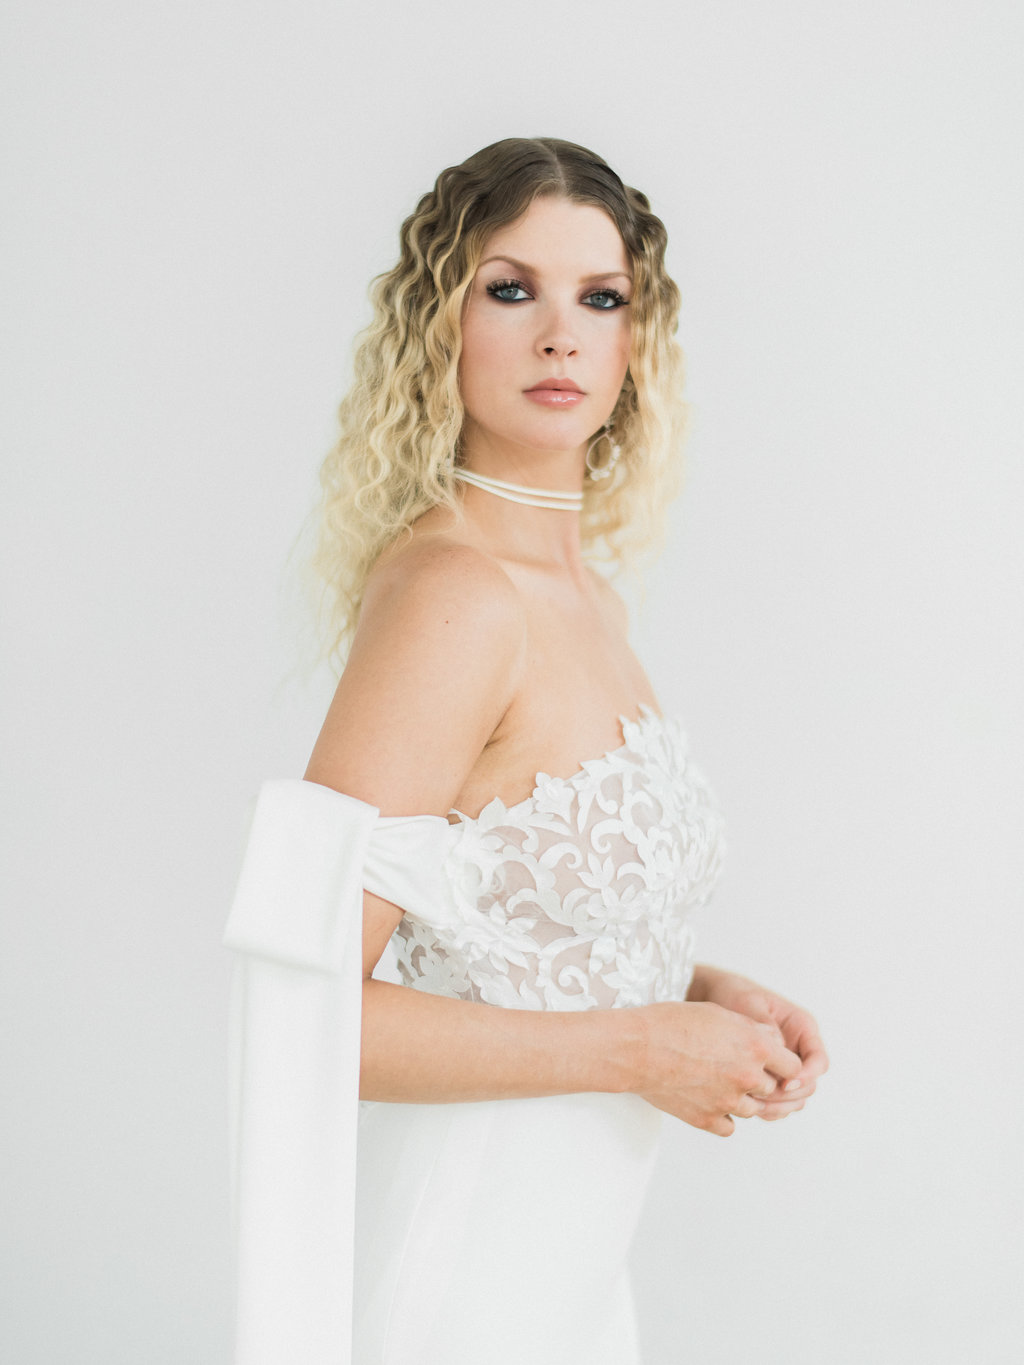 The 'La Rose D'Hiver' Bridal Collection by Delila Fox | Featured on LOVE FIND CO.